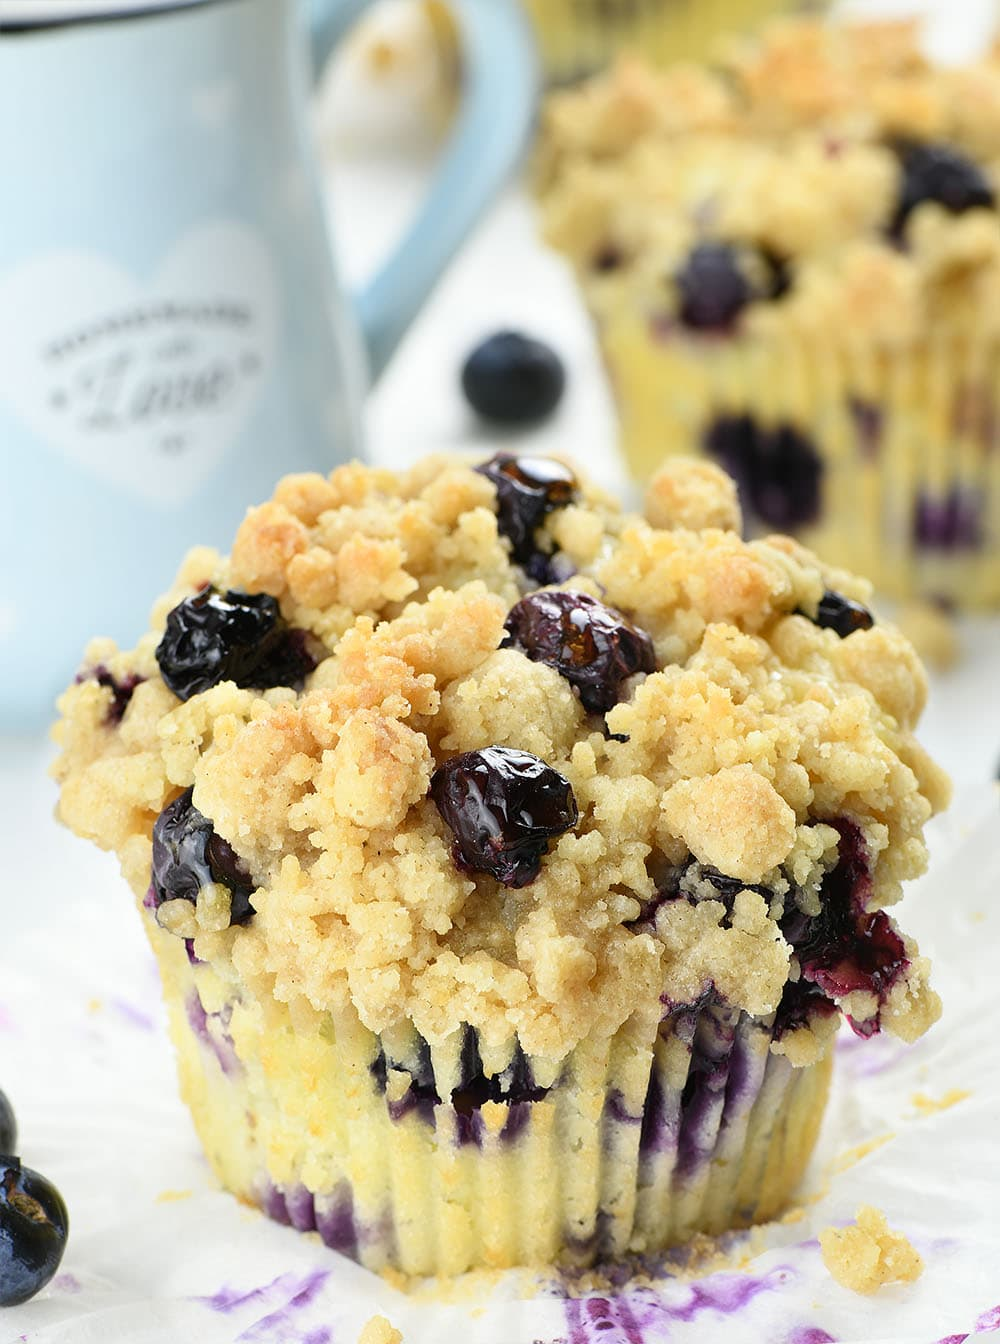 Blueberry Cream Cheese Muffins in front of couple of muffins.